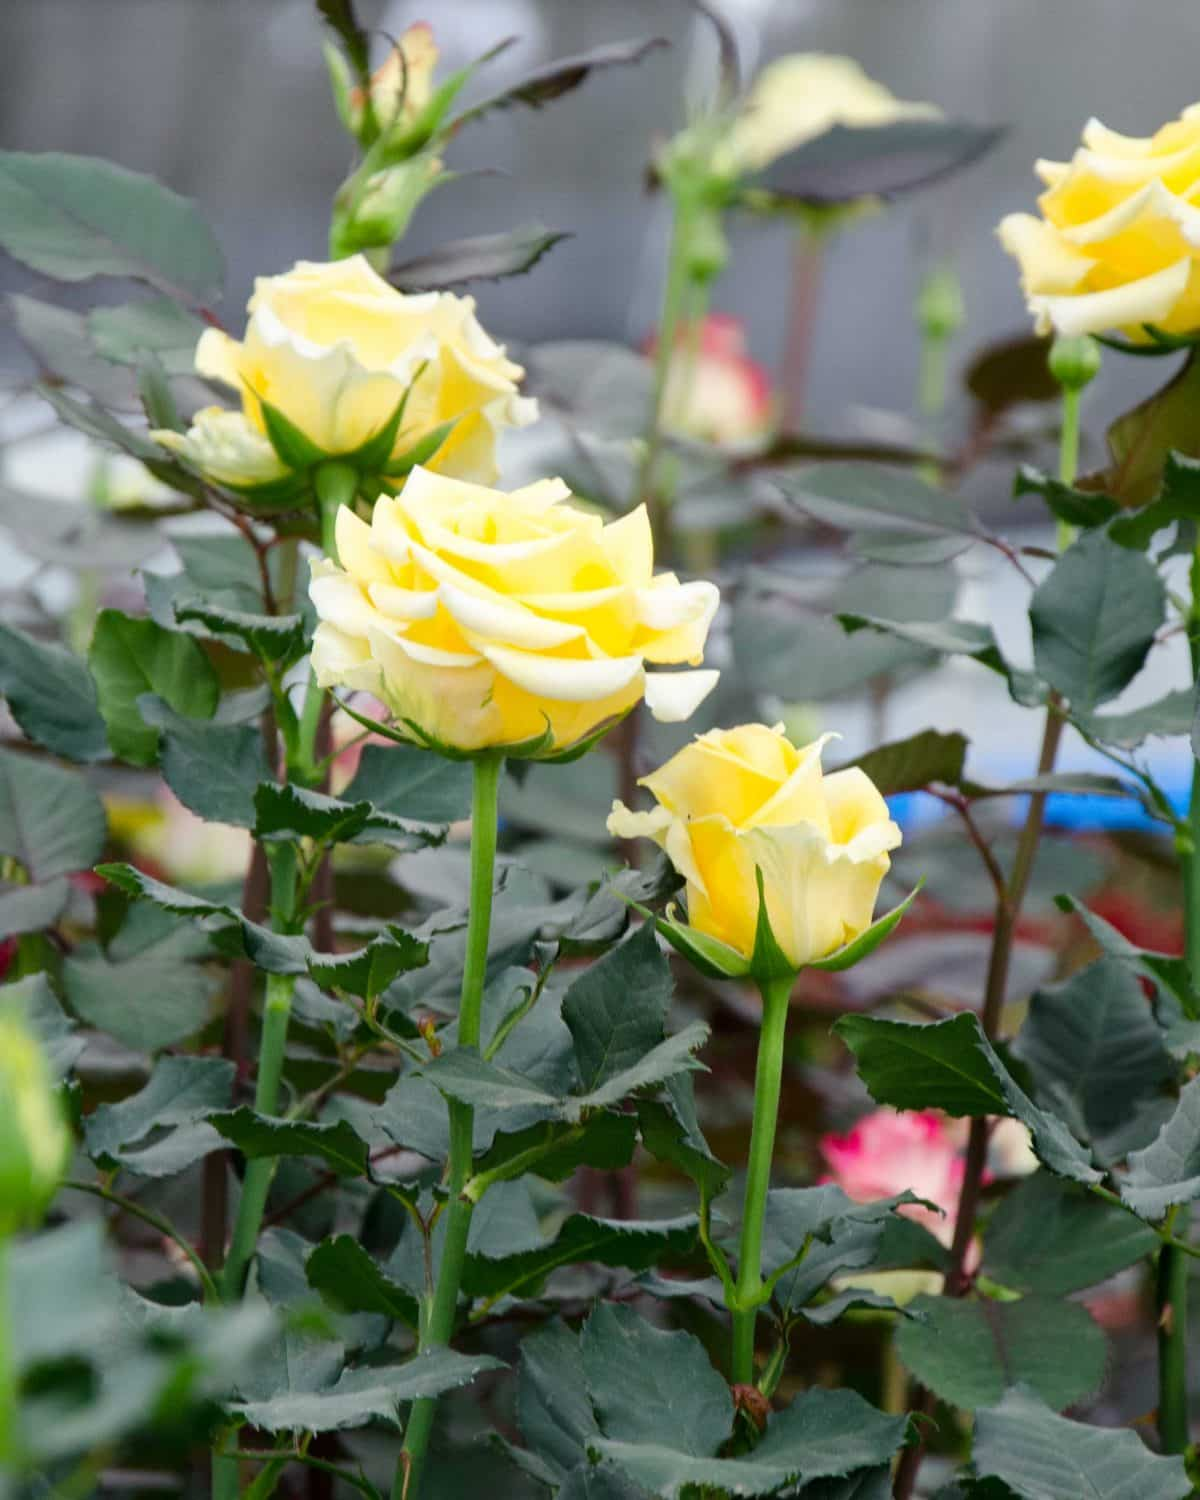 Yellow Roses, Pichincha Province, Ecuador | ©Angela Drake / Not Your Average American